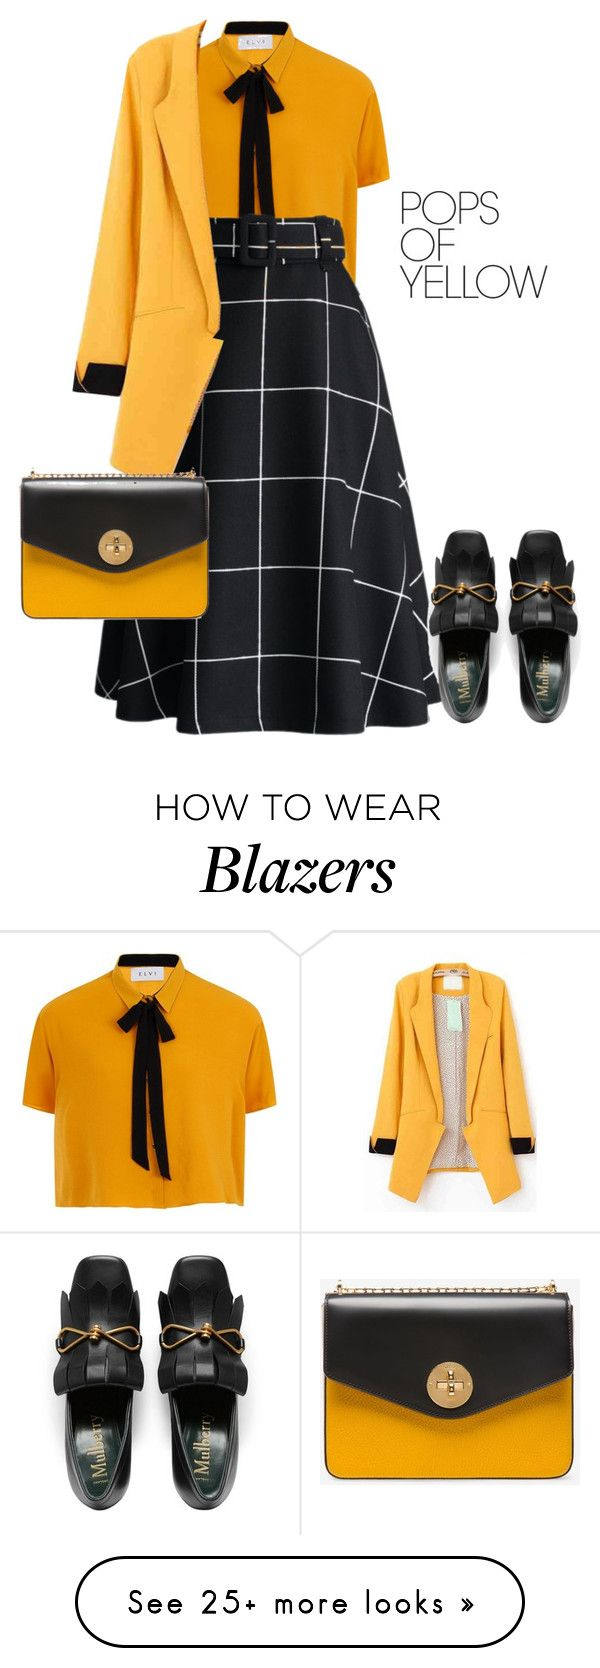 """""""outfit 7640"""" by natalyag on Polyvore featuring Elvi, Bally, PopsOfYellow and NYFWYellow"""